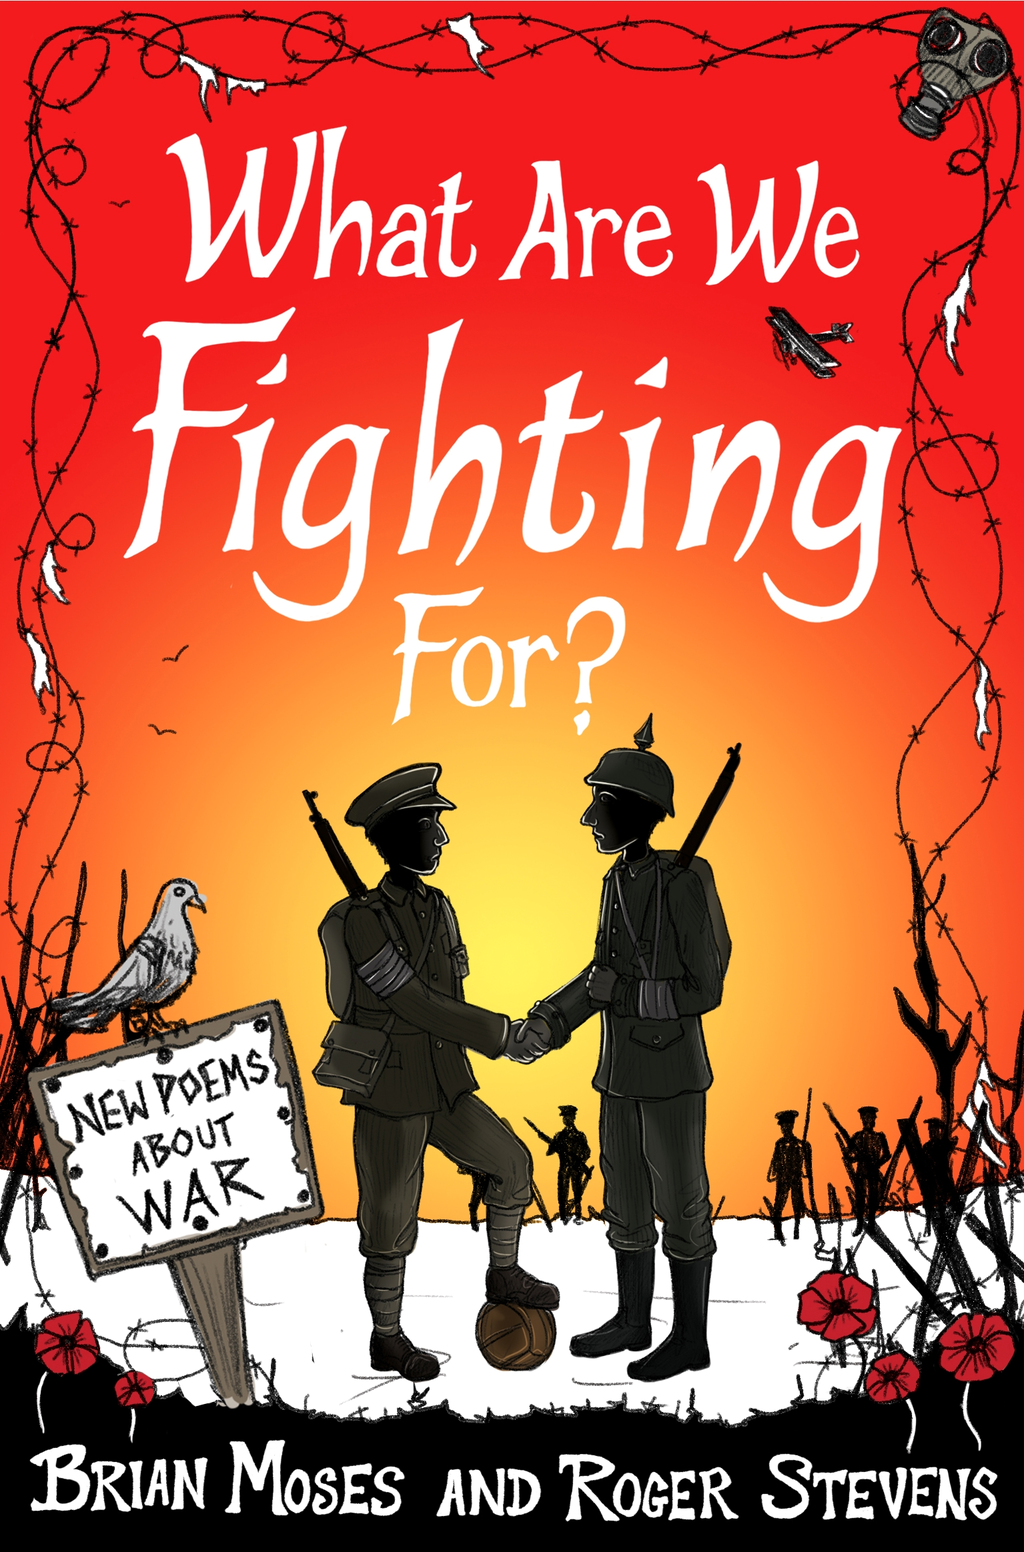 What Are We Fighting For? (Macmillan Poetry) New Poems About War